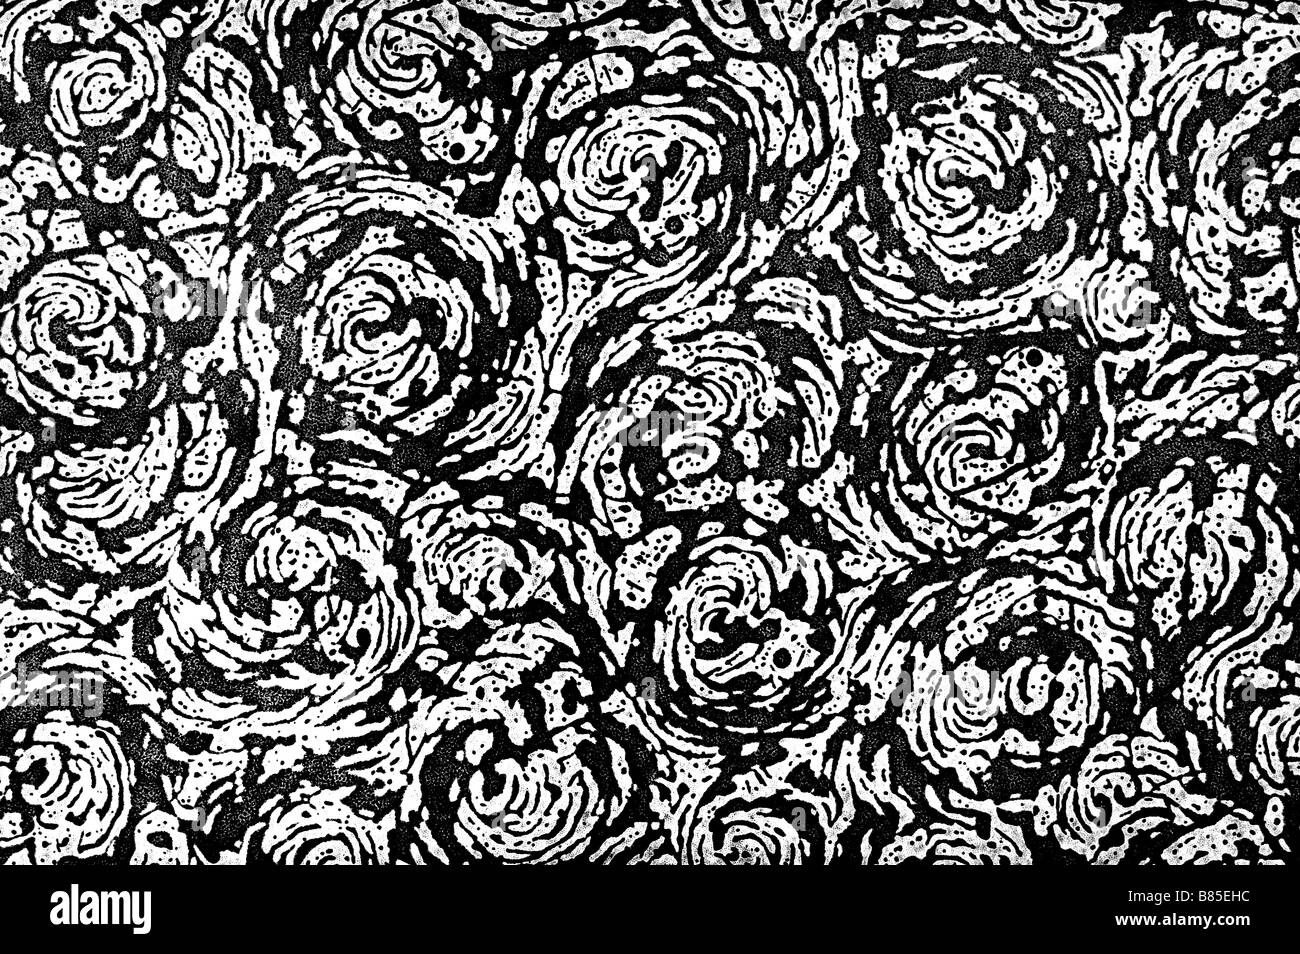 Black and white wallpaper pattern - Stock Image